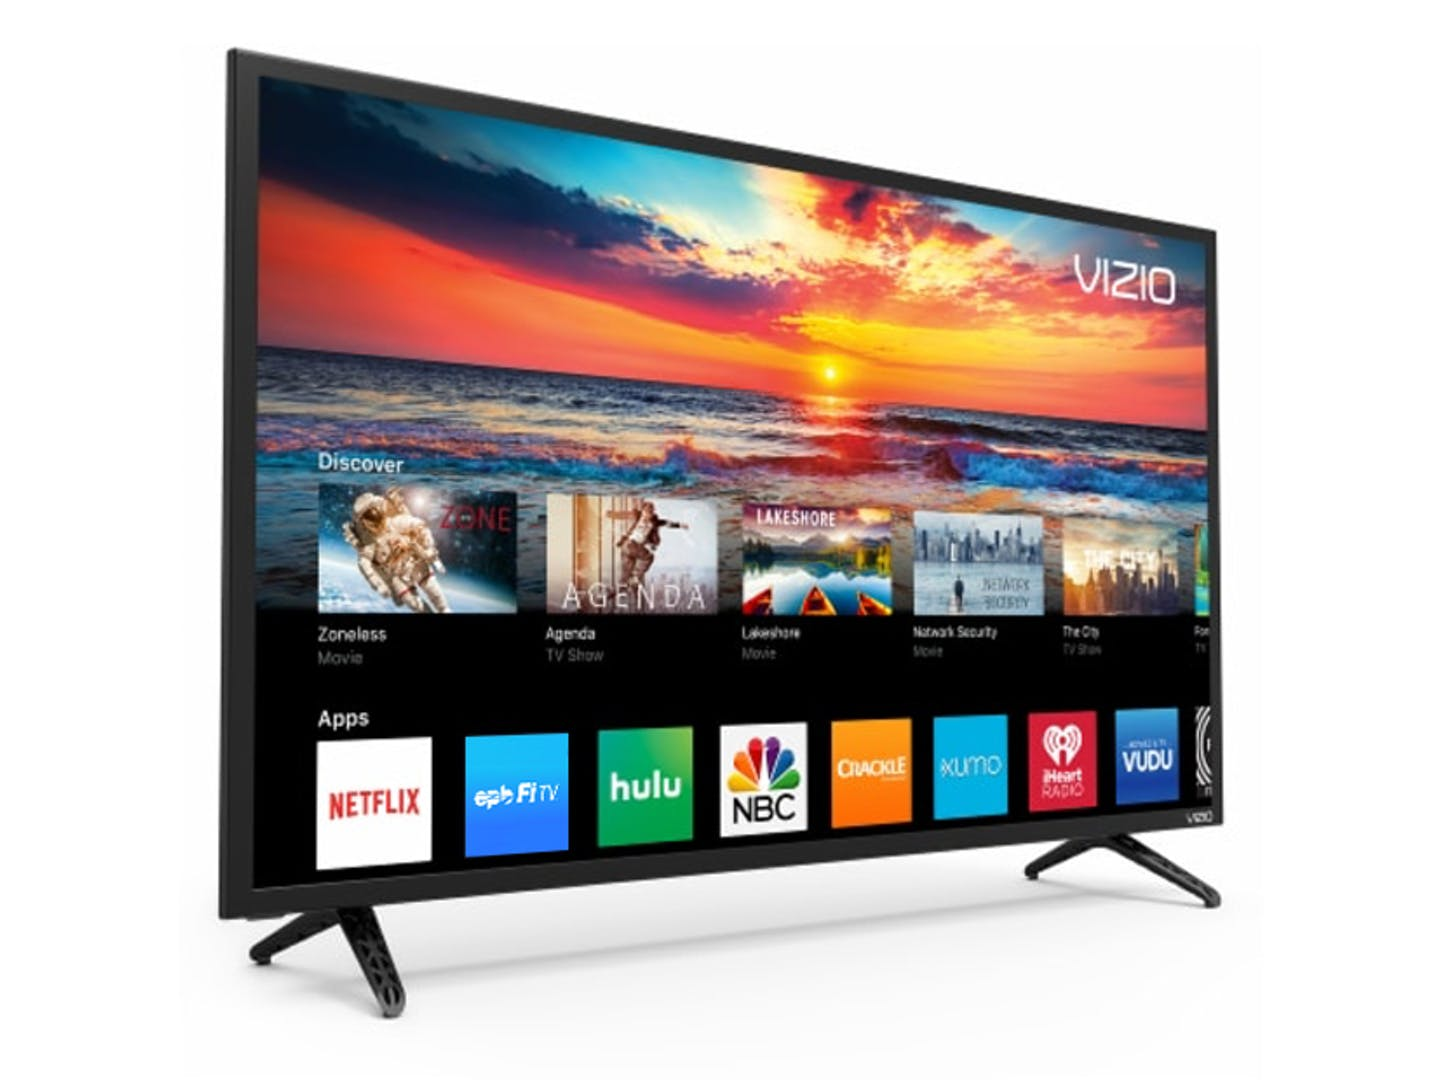 Image of a smart TV with the EPB Fi TV app displayed.